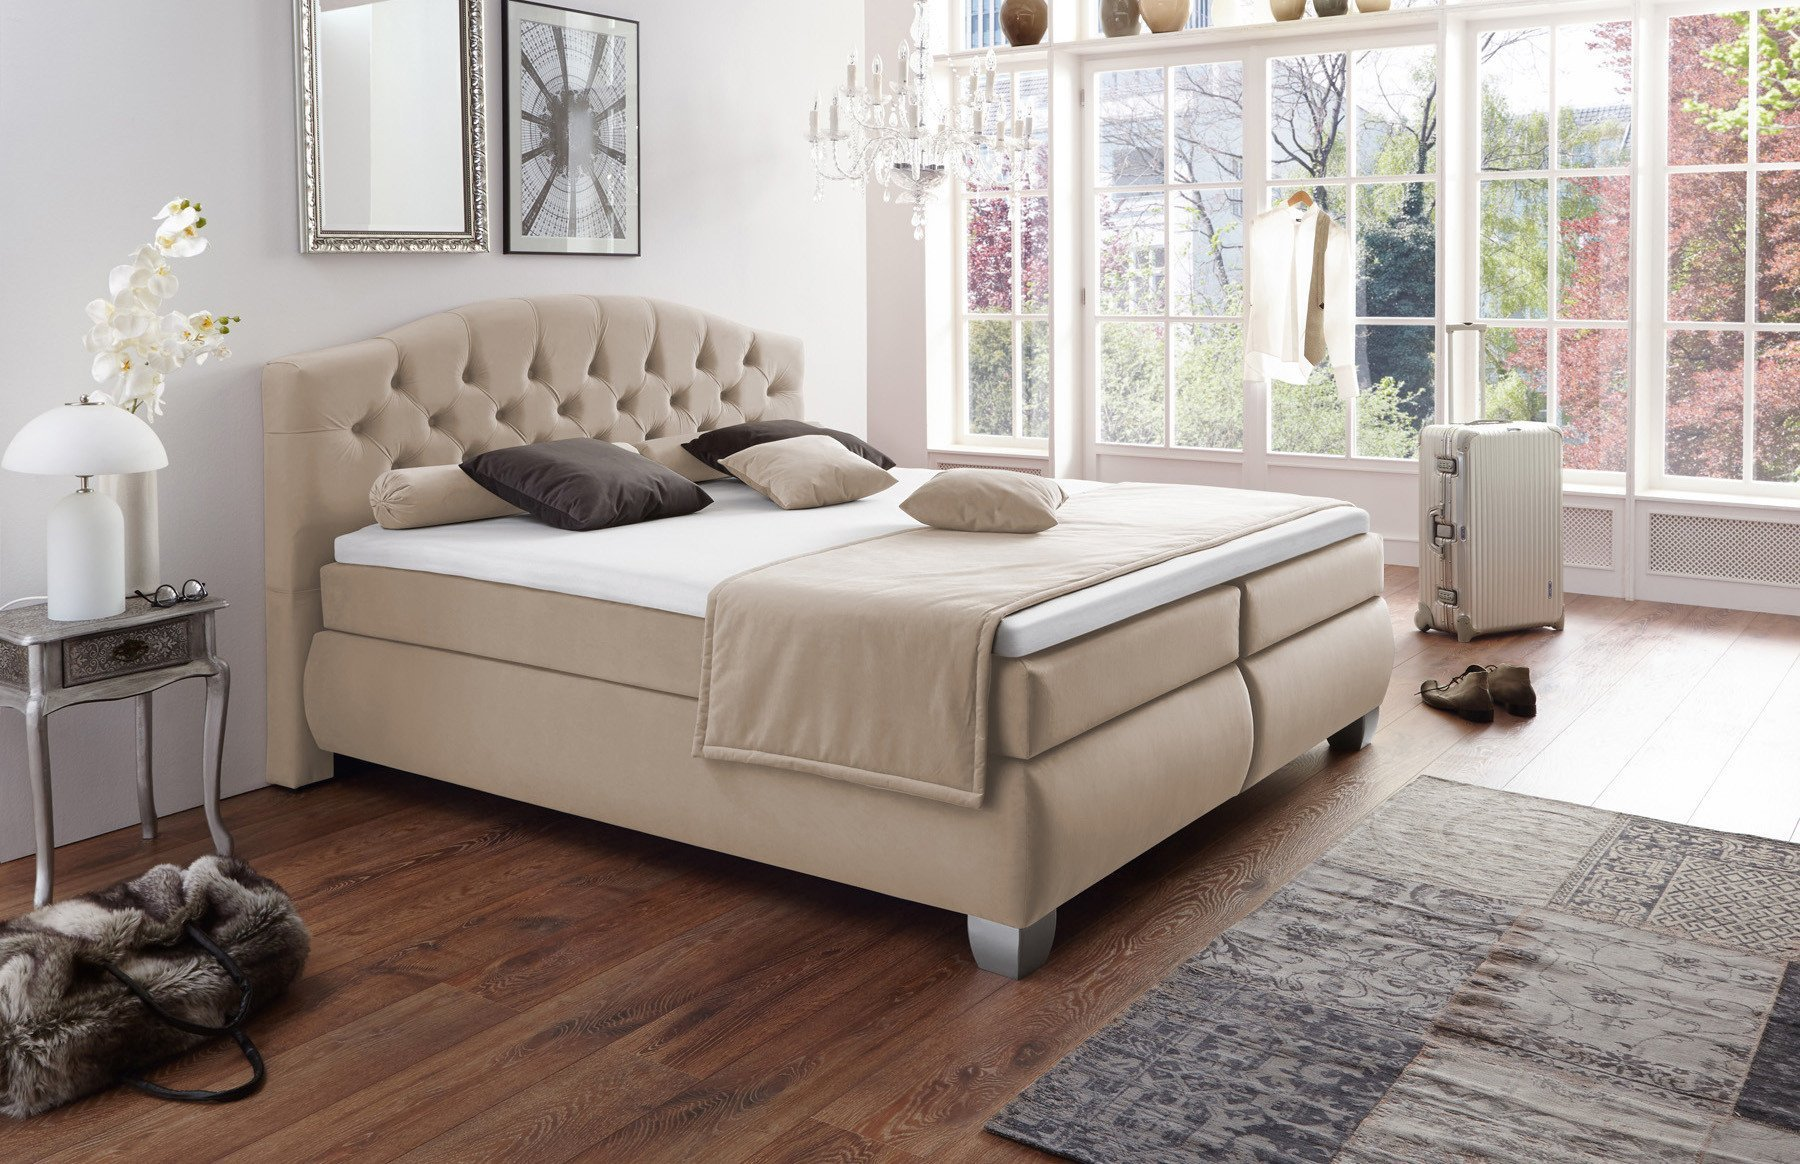 hapo boxspringbett chester in beige mit knopfheftung. Black Bedroom Furniture Sets. Home Design Ideas